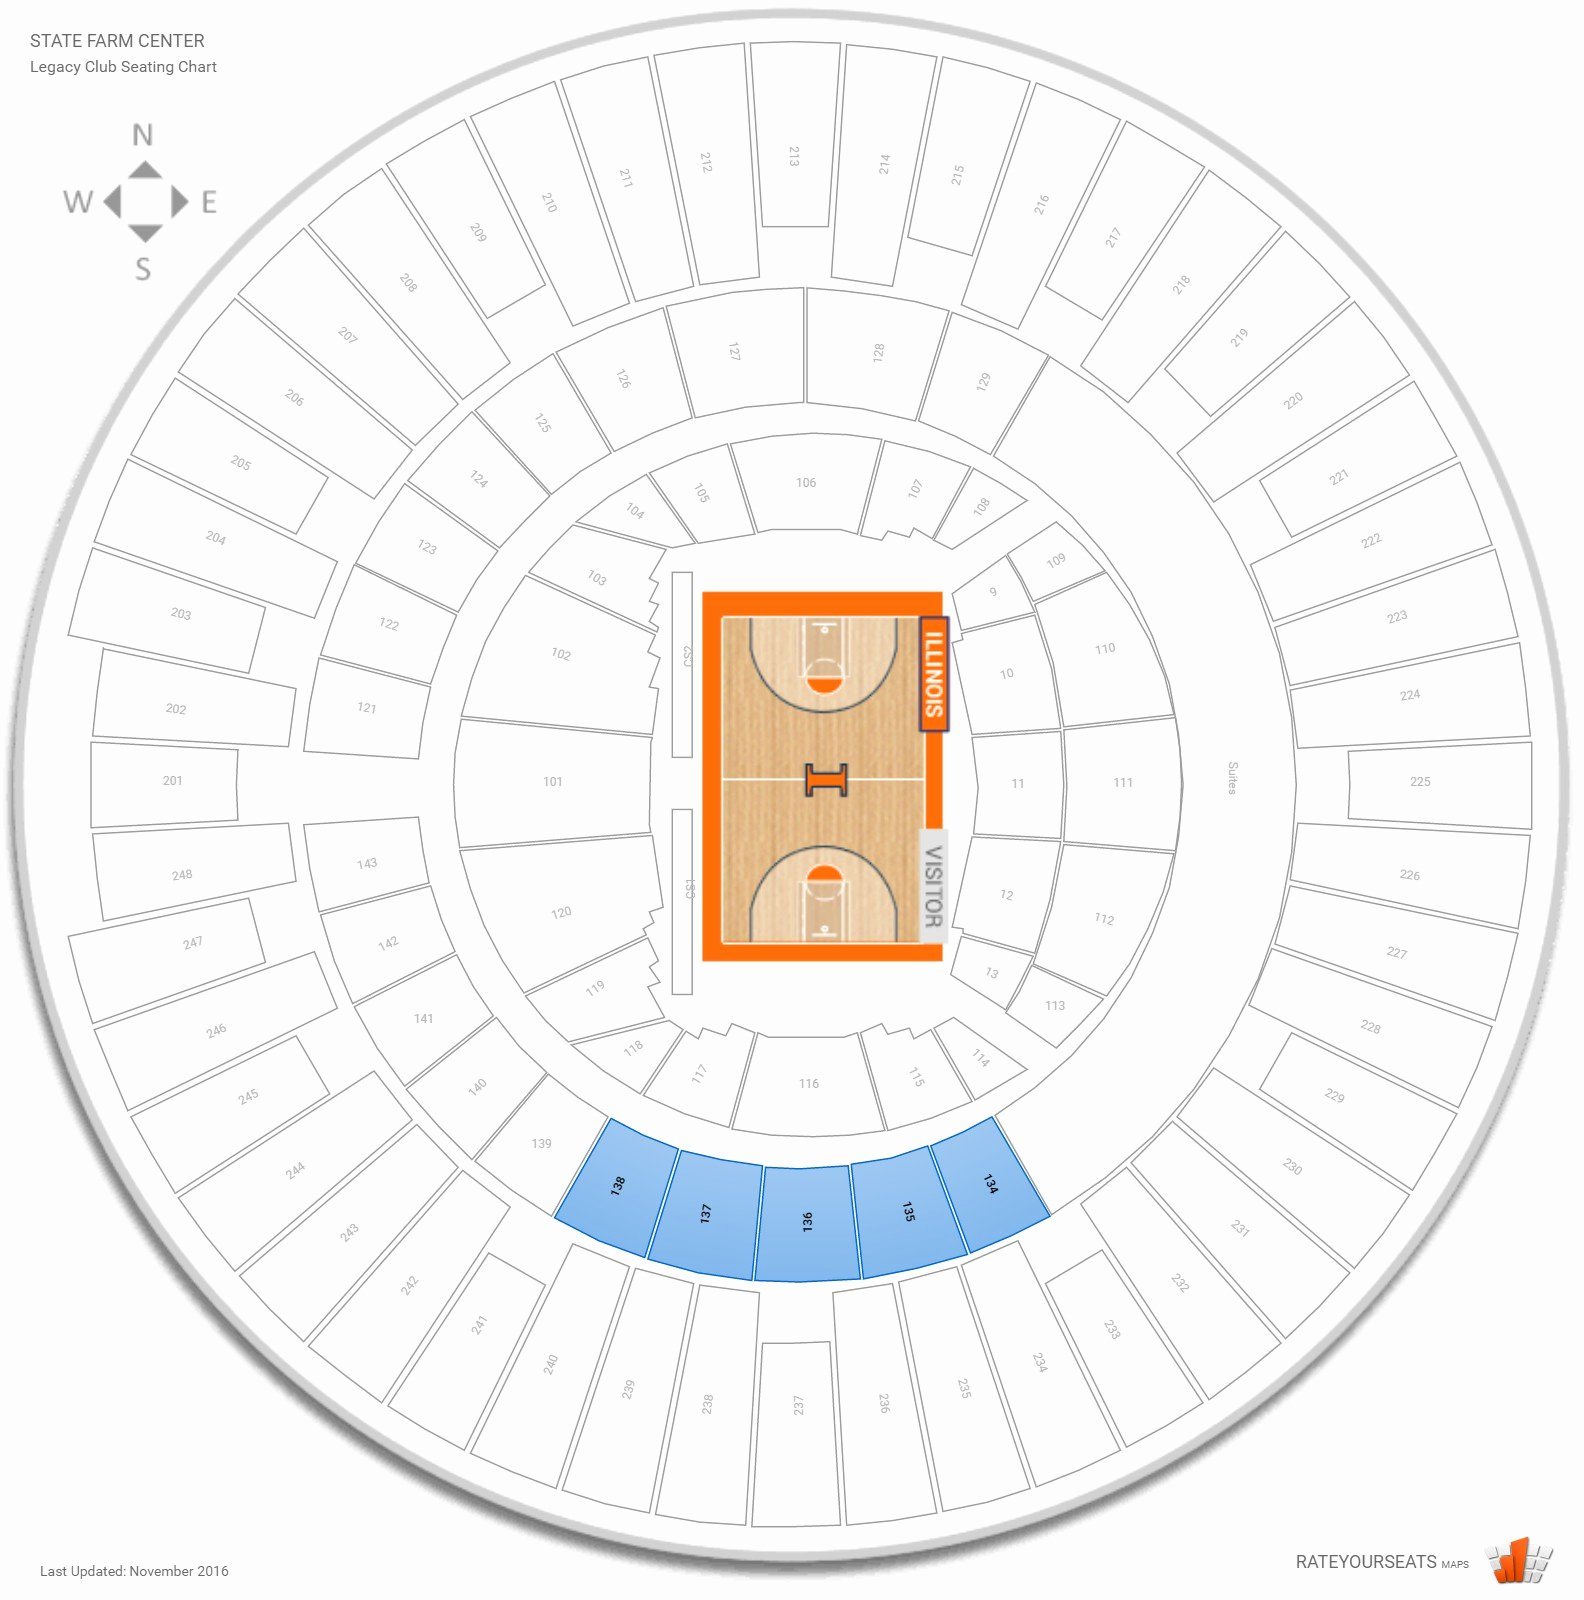 Assembly Hall Seating Chart Beautiful Club and Premium Seating at State Farm Center